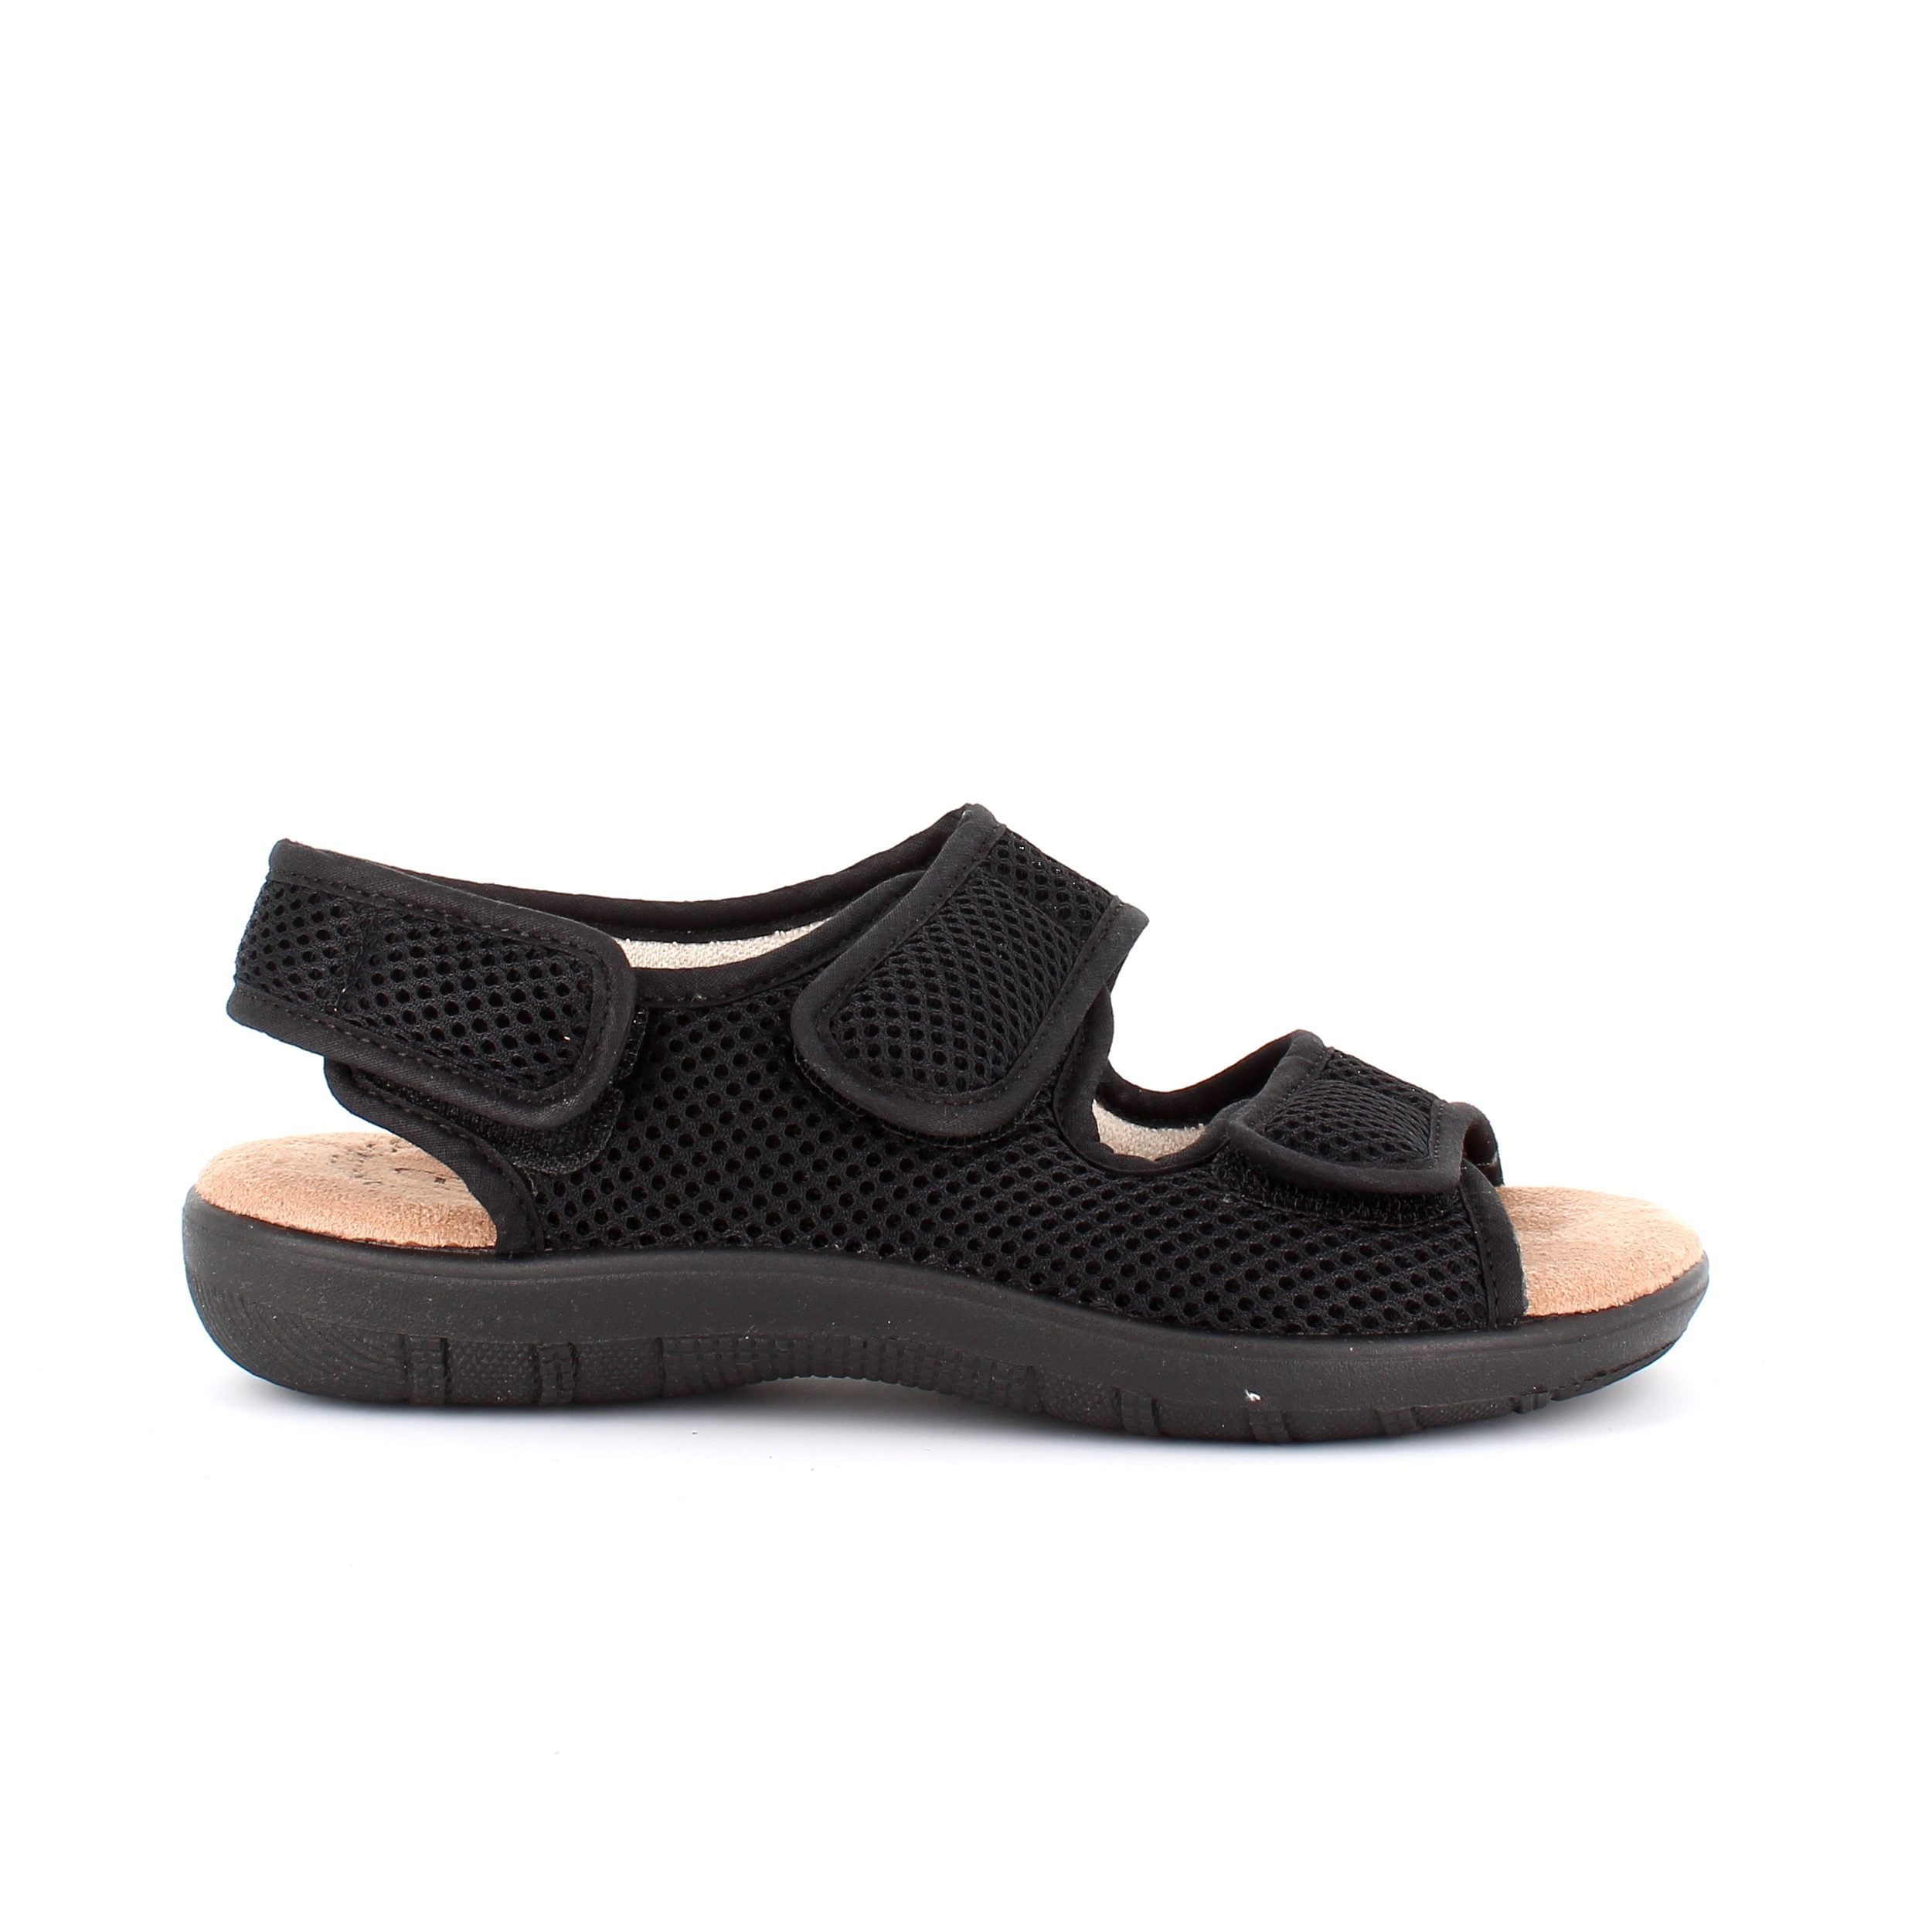 Image of   Anatomisk soft sandal - 41